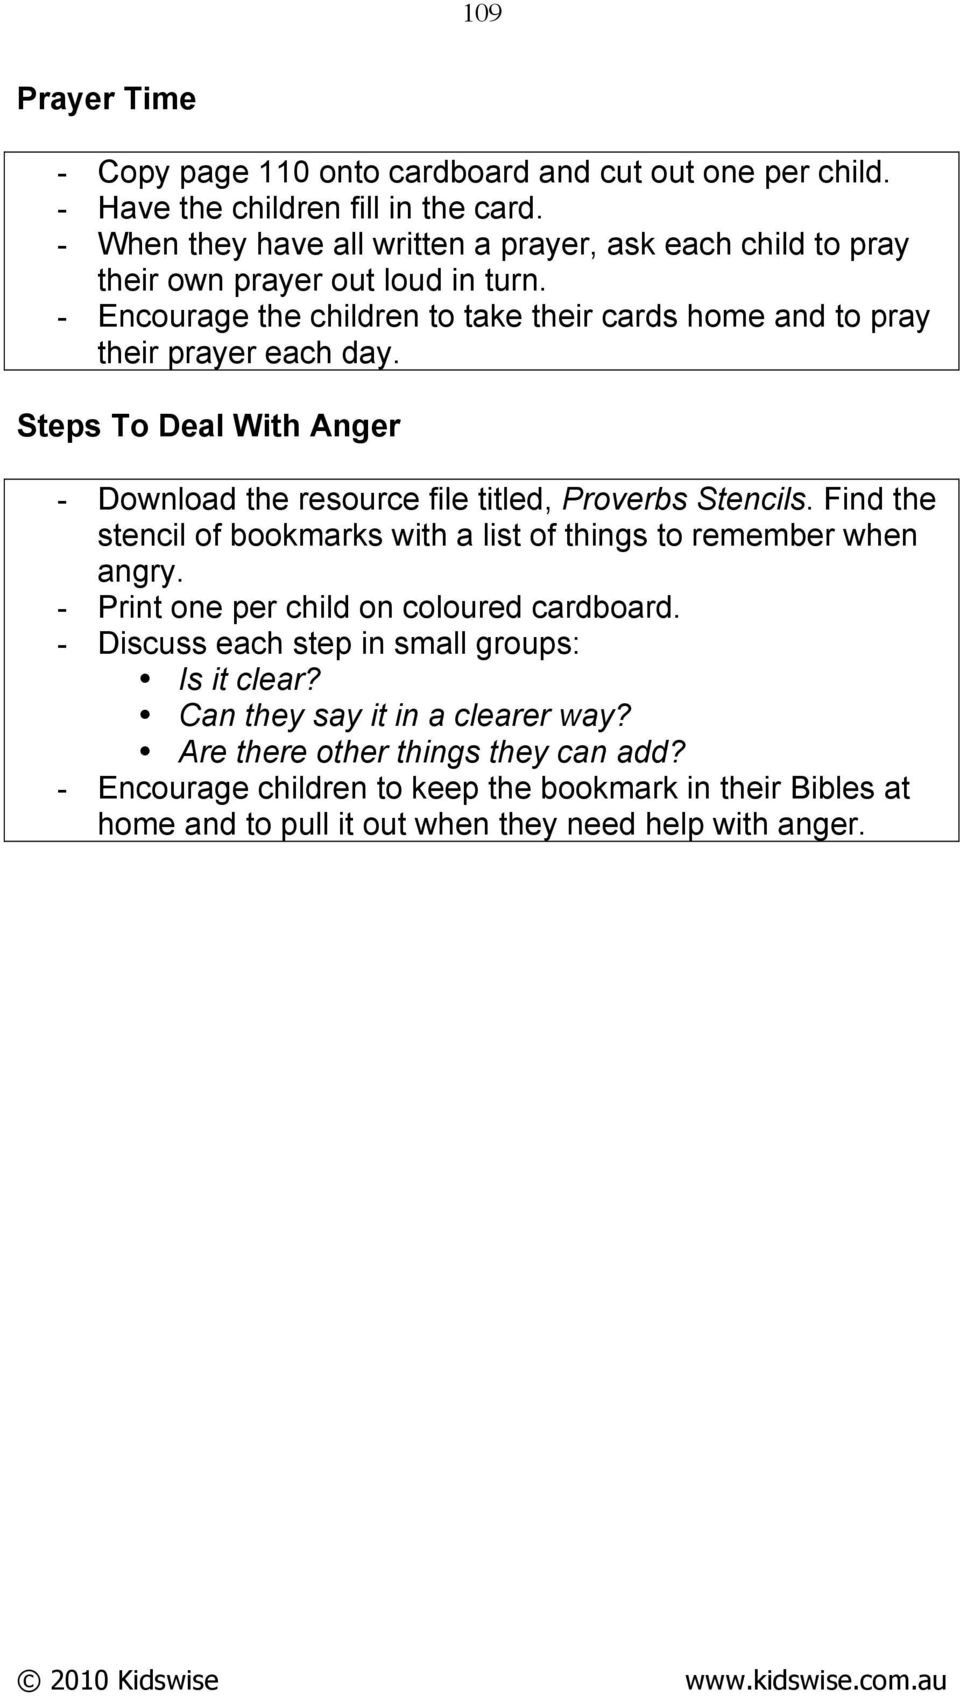 Steps To Deal With Anger - Download the resource file titled, Proverbs Stencils. Find the stencil of bookmarks with a list of things to remember when angry.